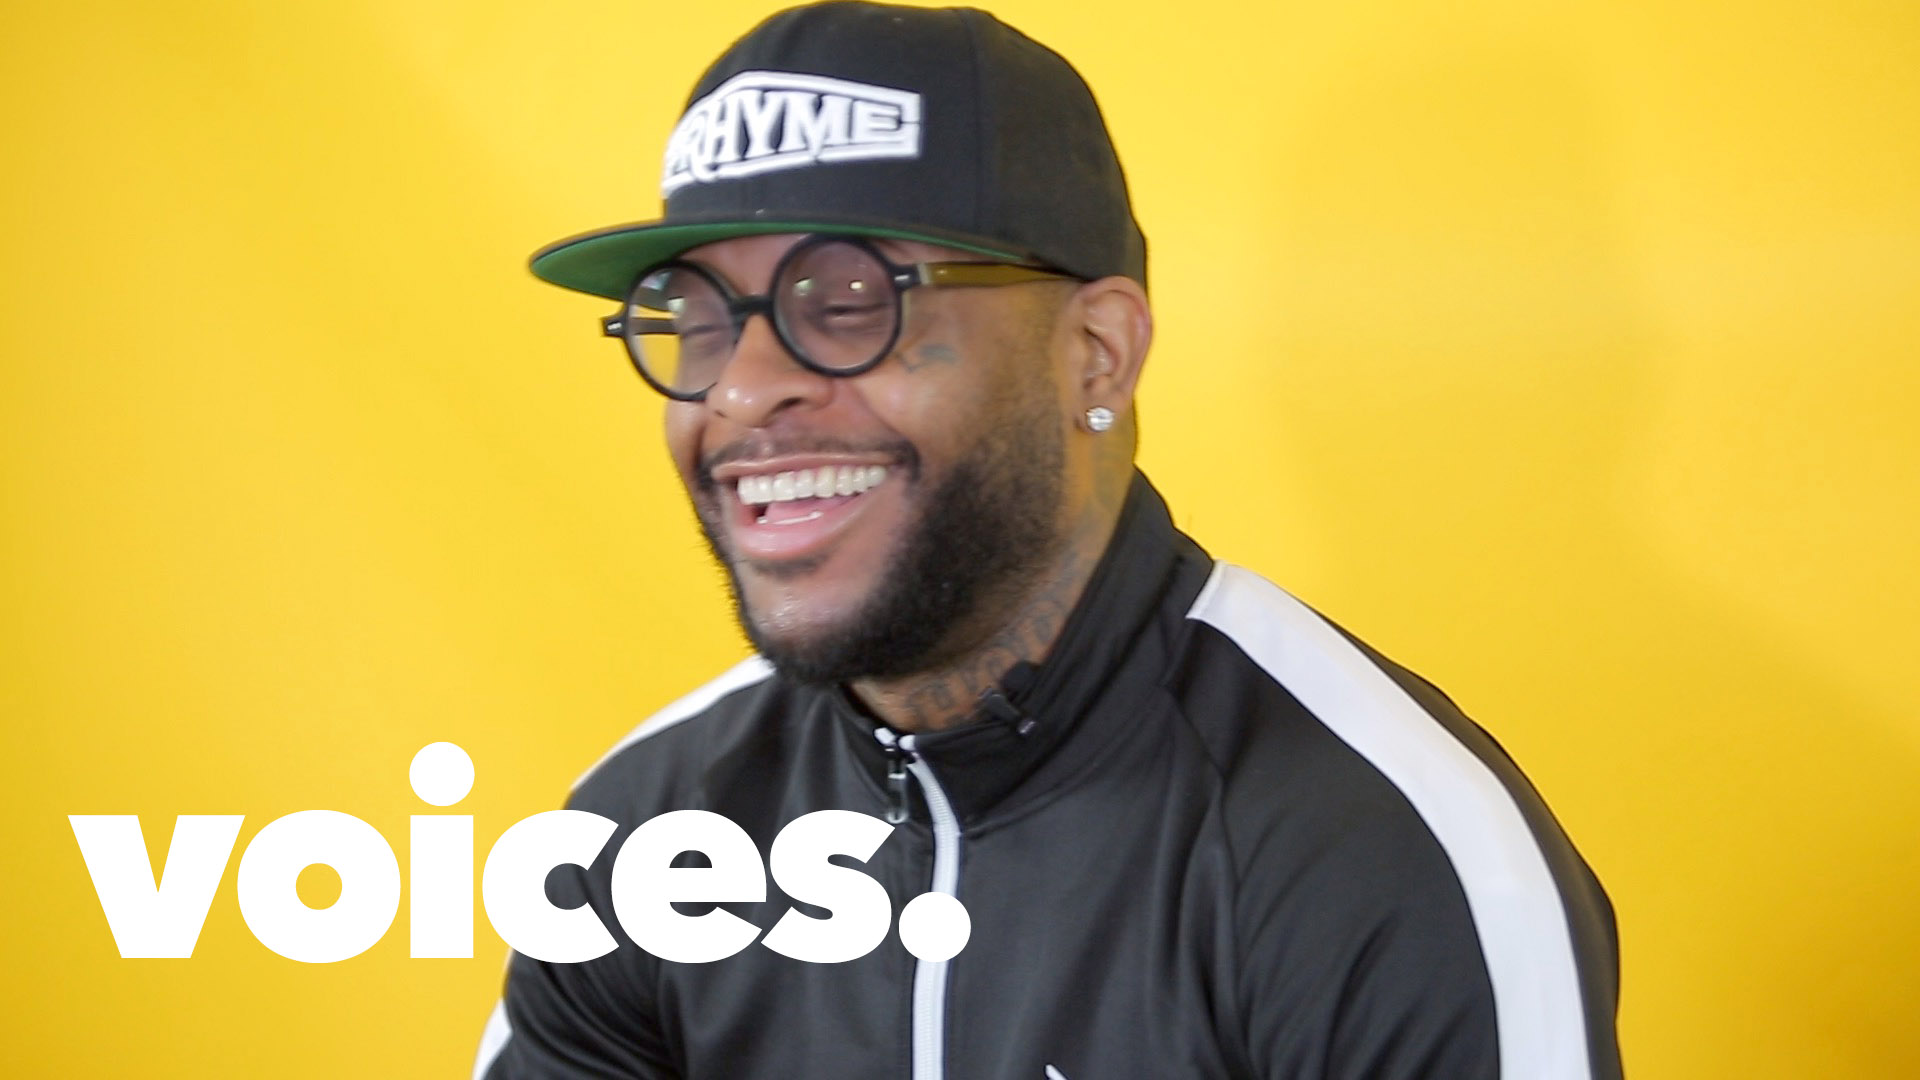 Voices Royce Da 5'9